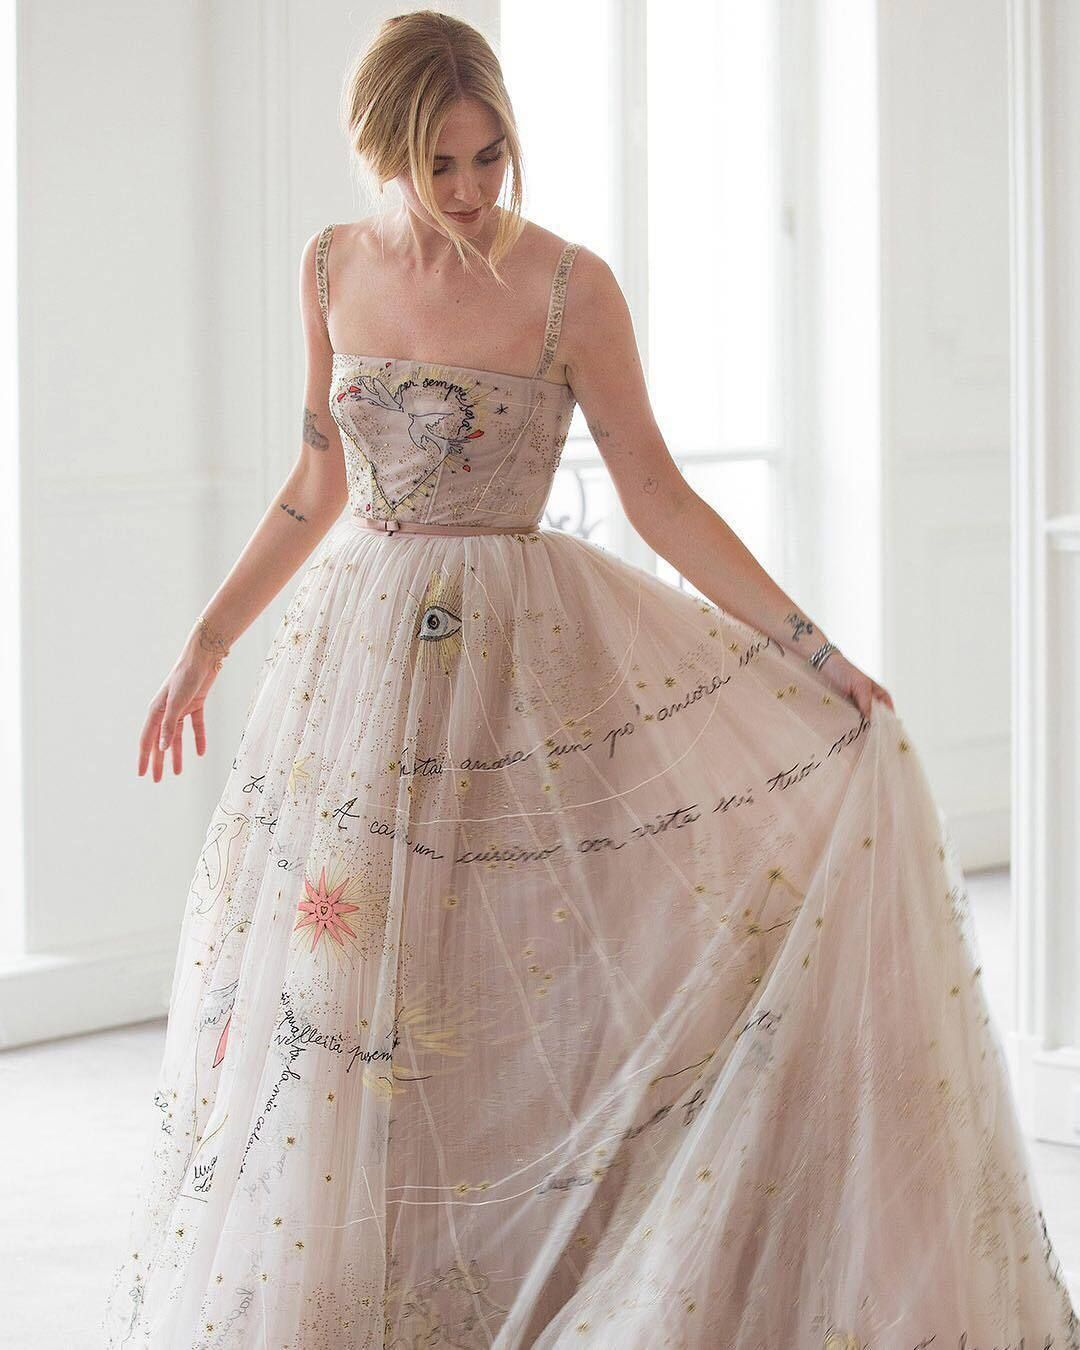 68e19a85 Chiara Ferragni's Dior gown for the wedding reception features the words and  places mentioned in the